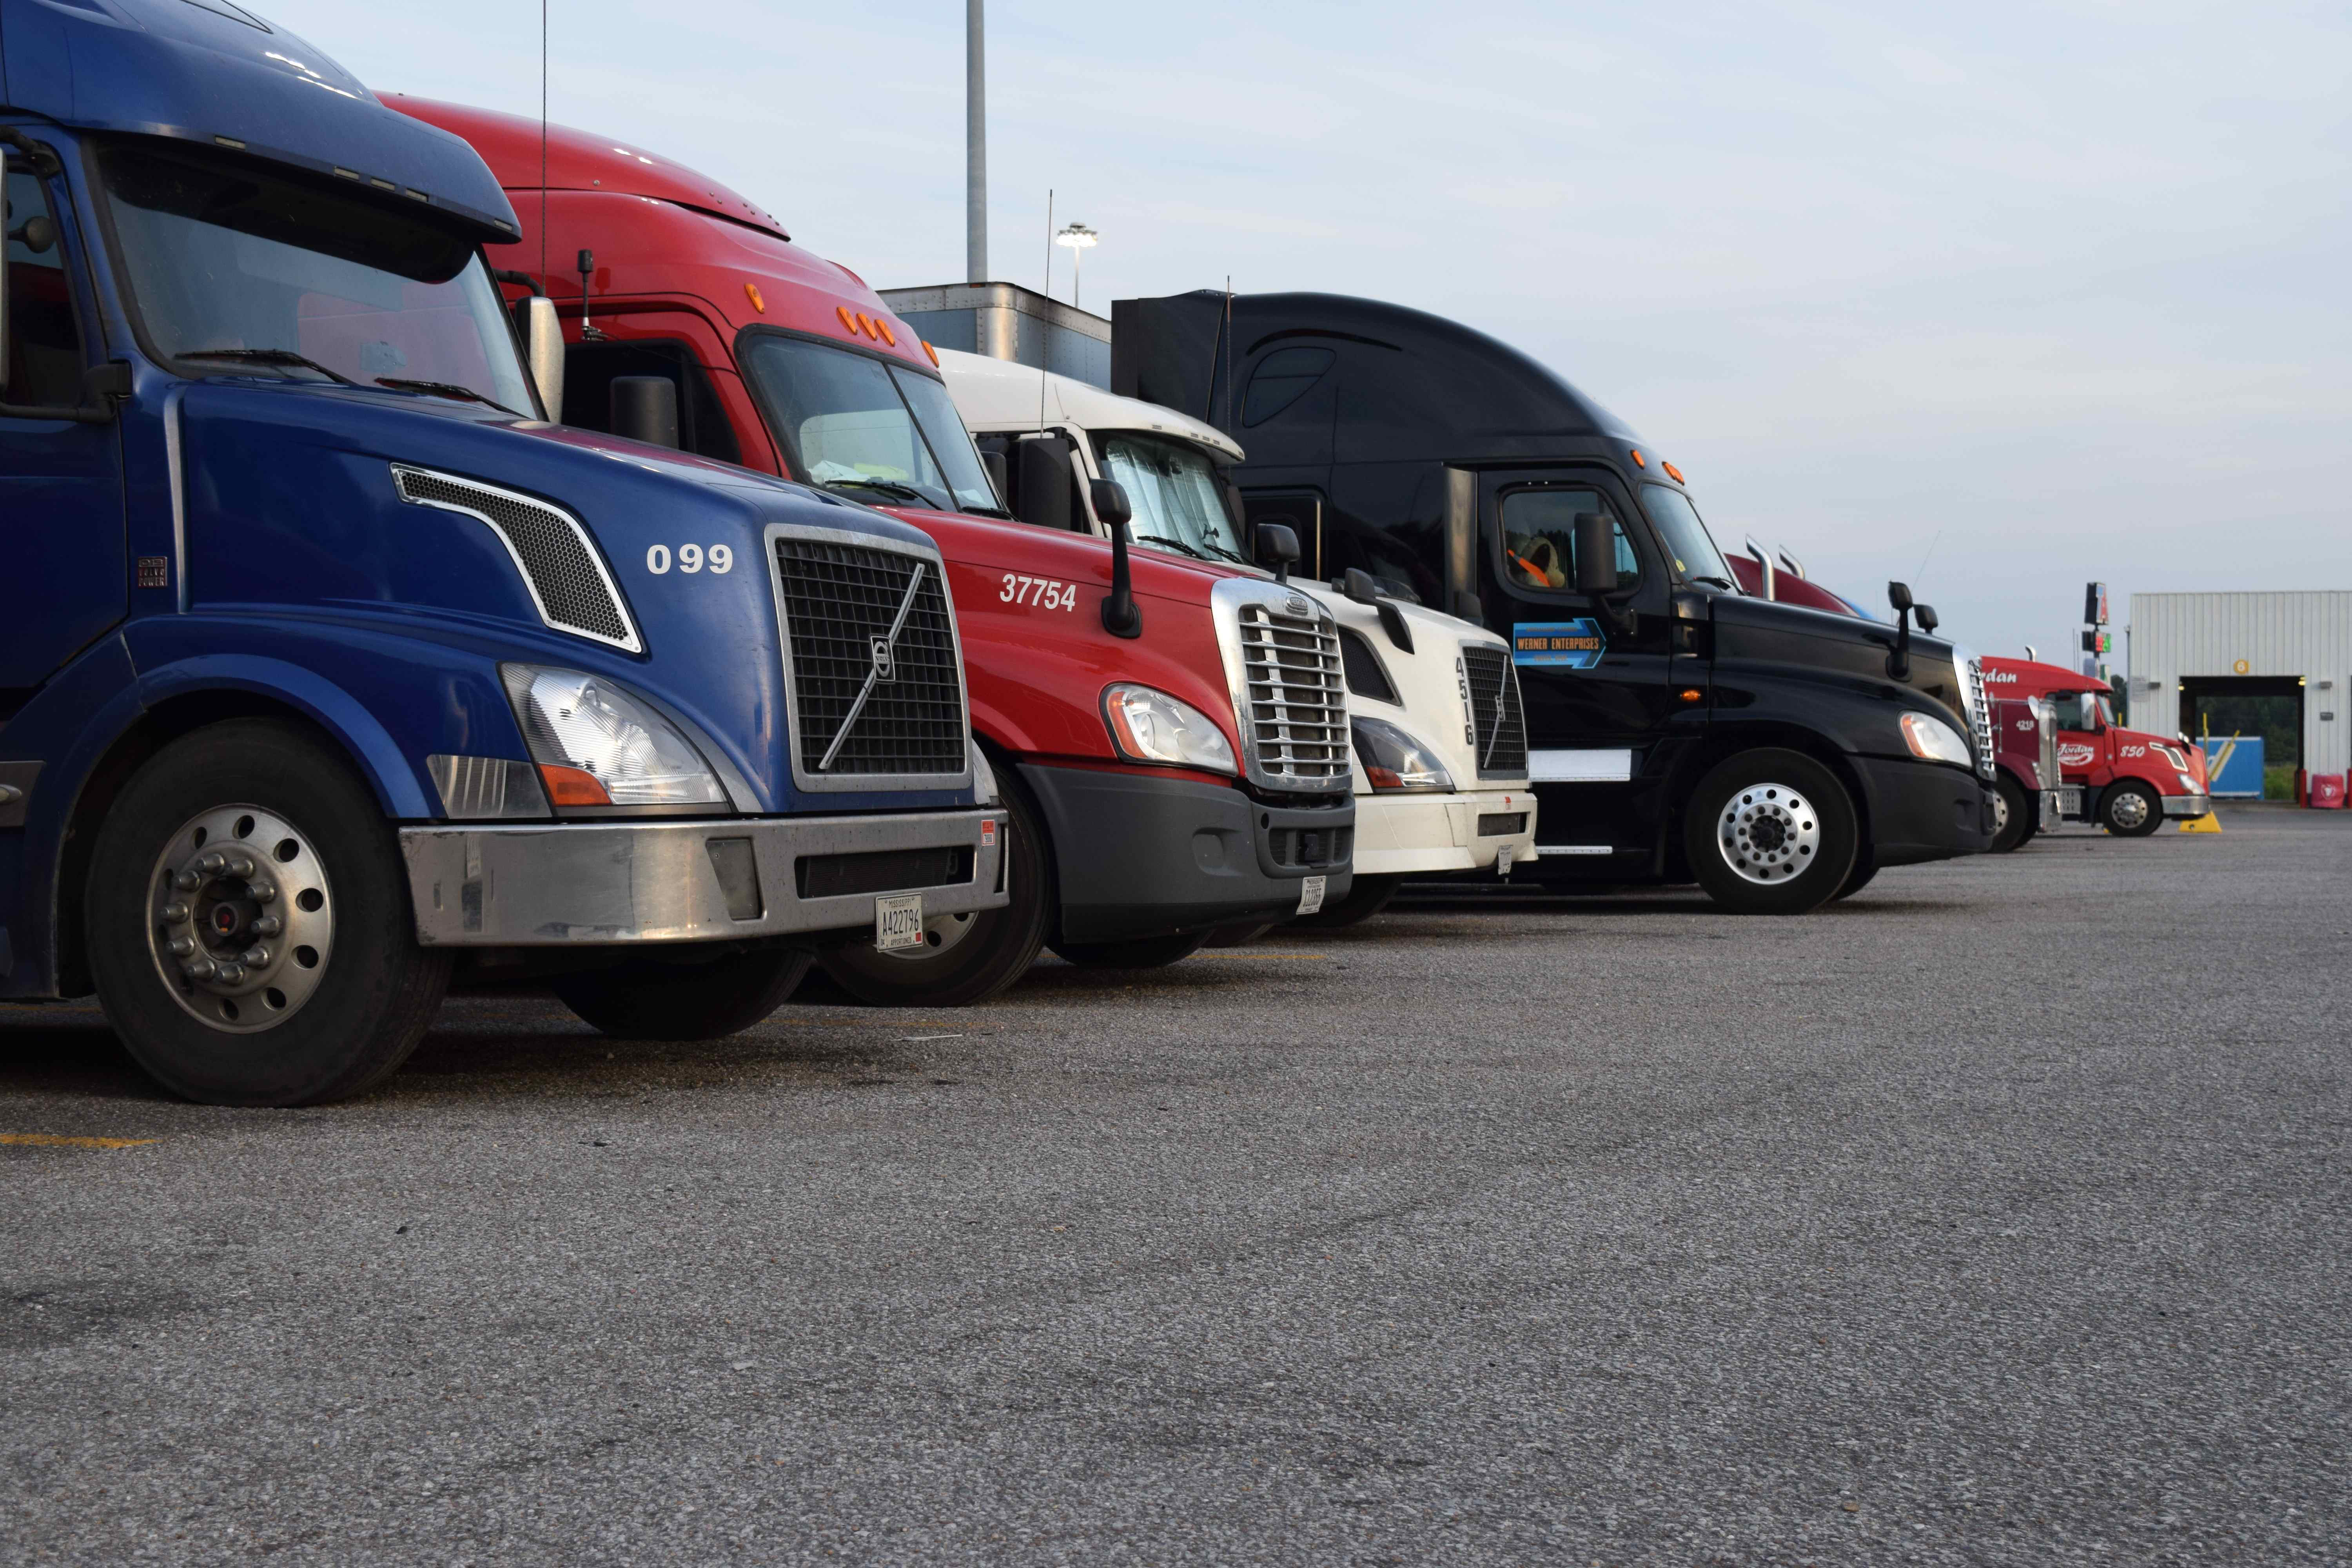 New app shows available truck parking spaces at more than 5,000 locations across U.S.